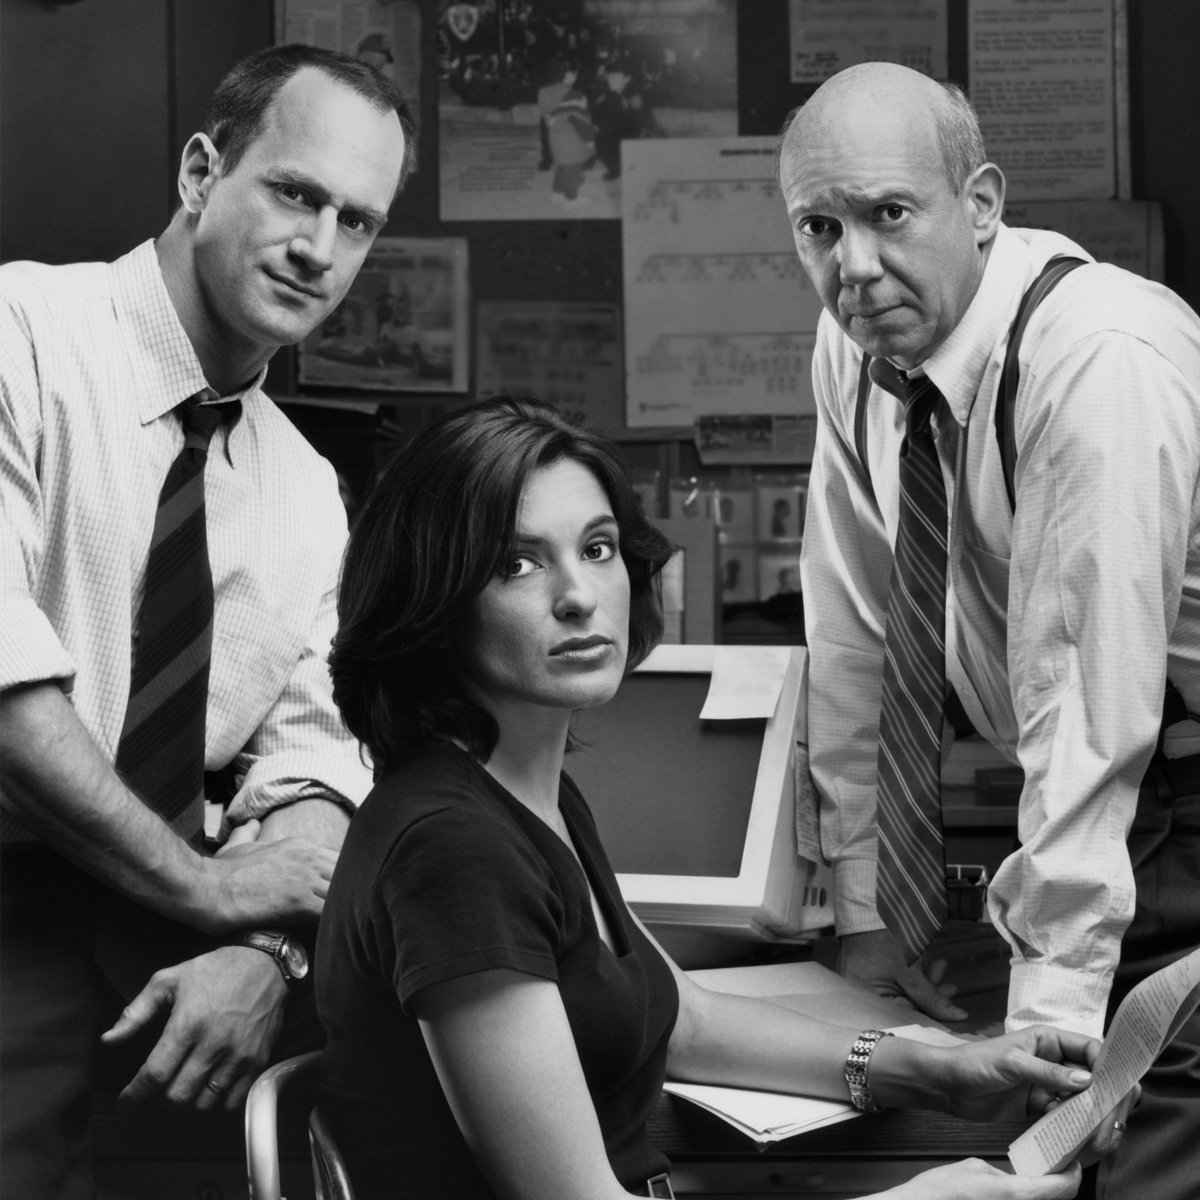 21 years ago, we were introduced to the #SVU squad for the very first time. https://t.co/6rlNSa02uJ